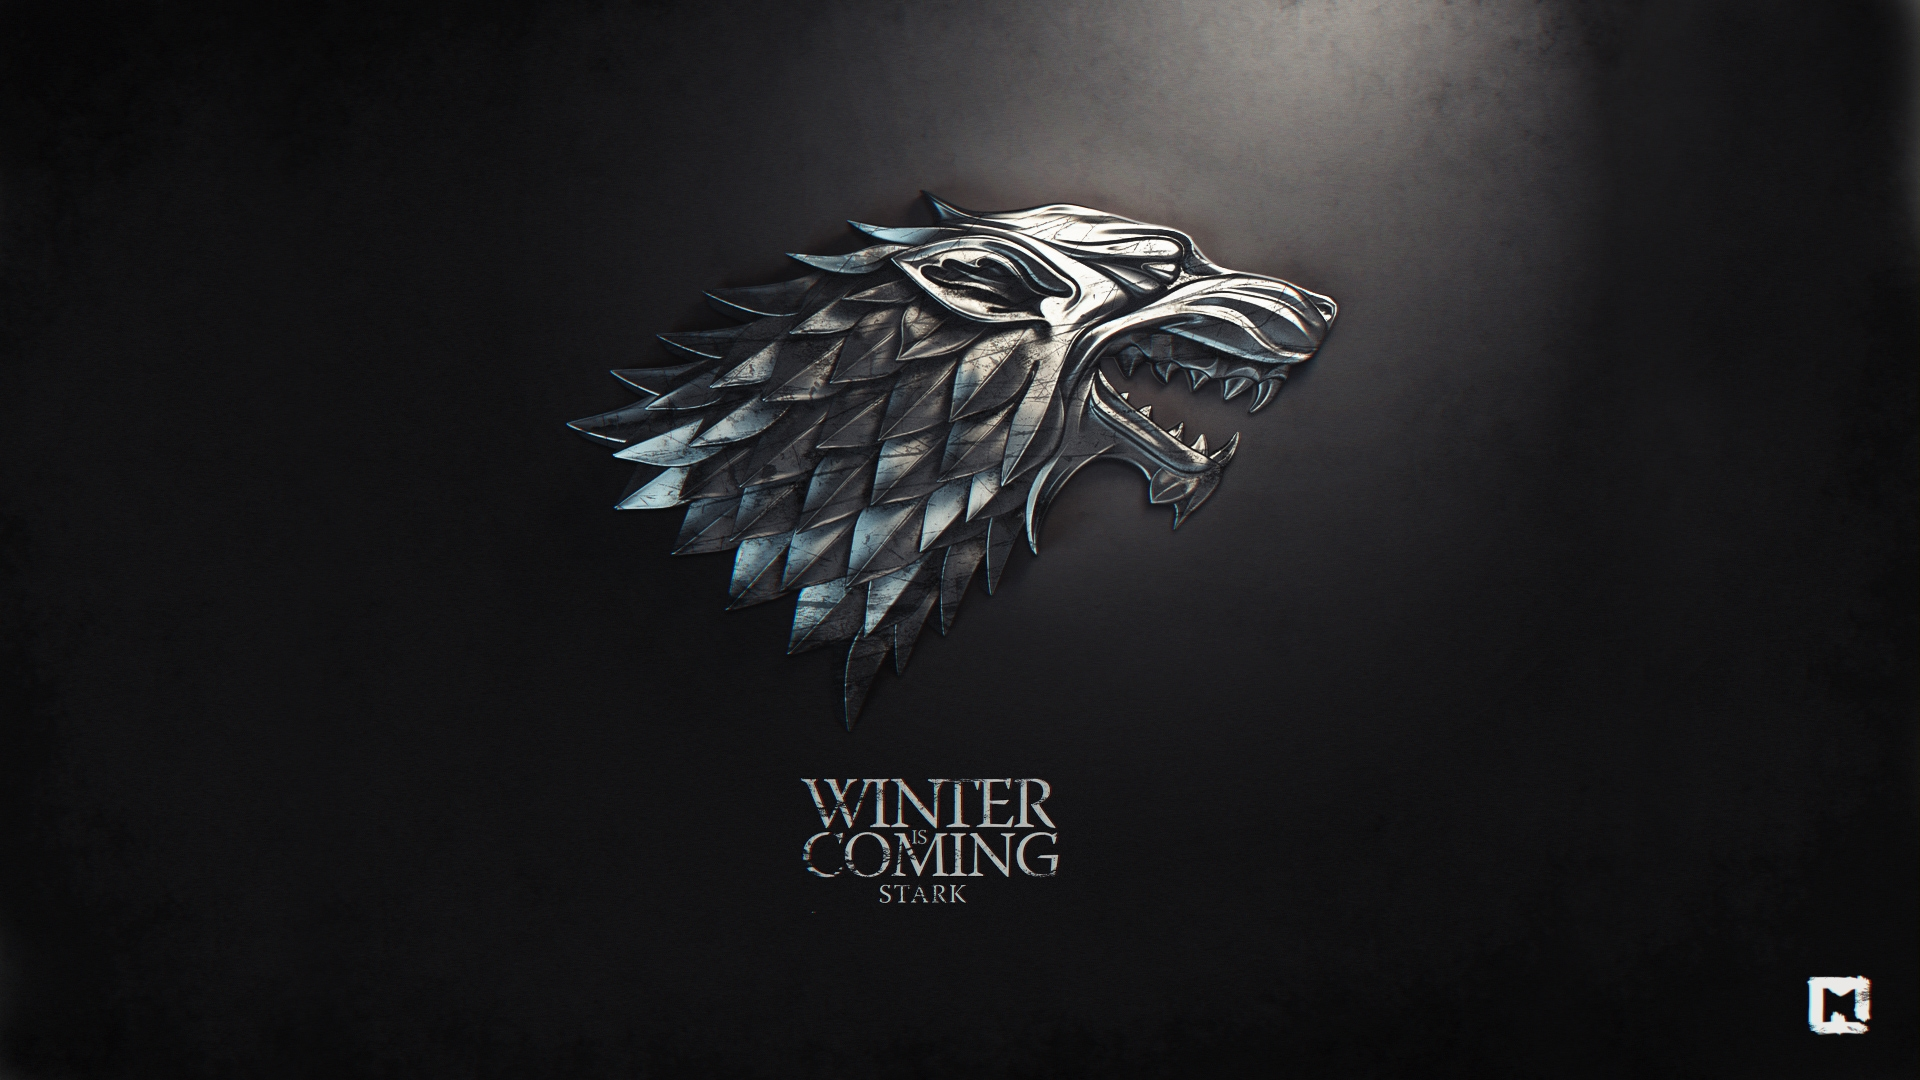 Game of thrones house wallpaper album   Album on Imgur 1920x1080